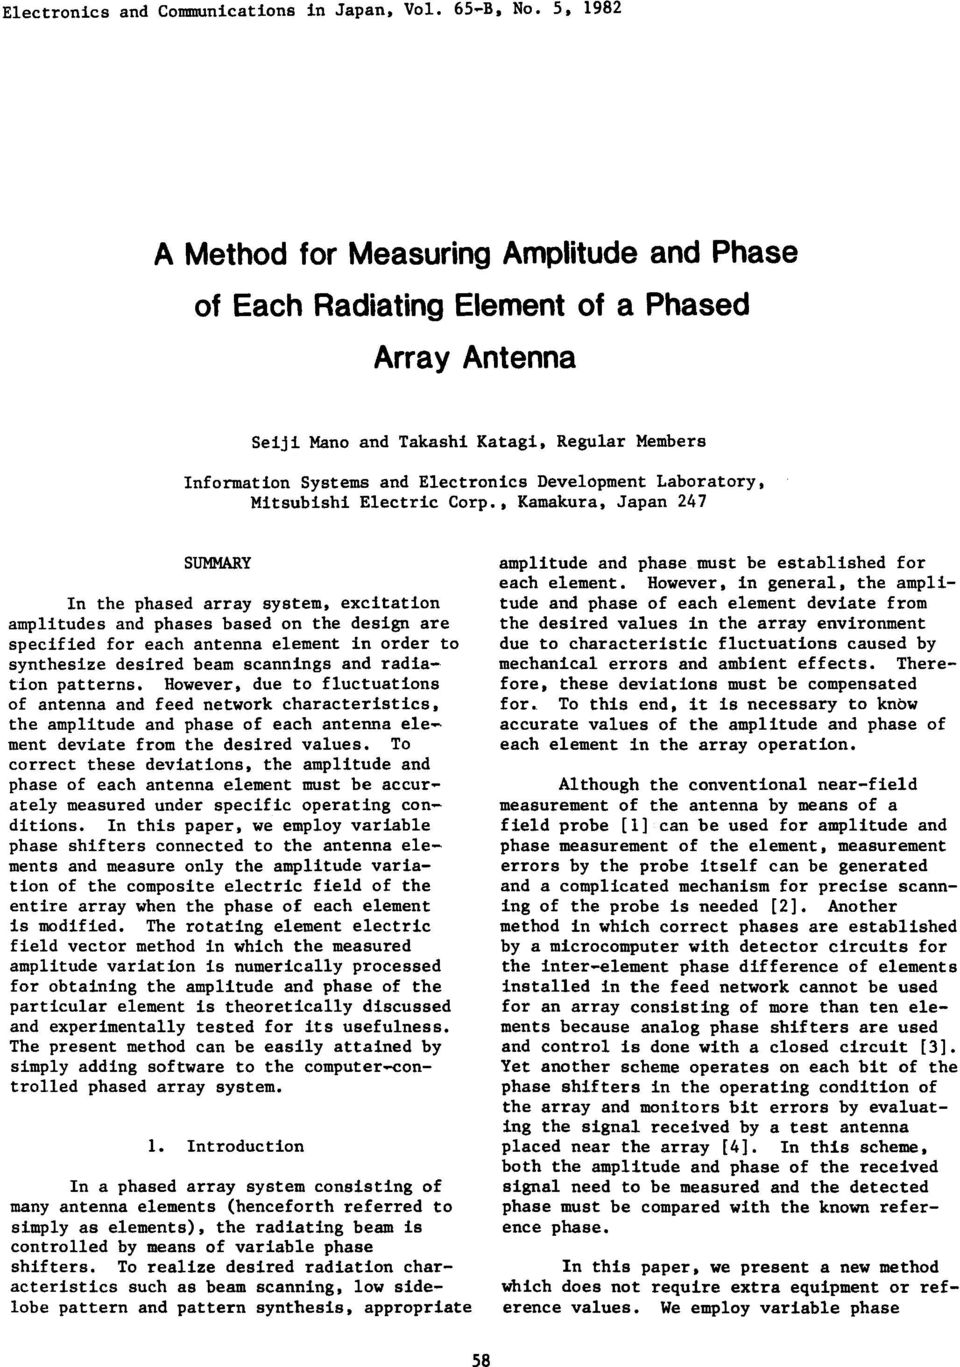 A Method for Measuring Amplitude and Phase of Each Radiating